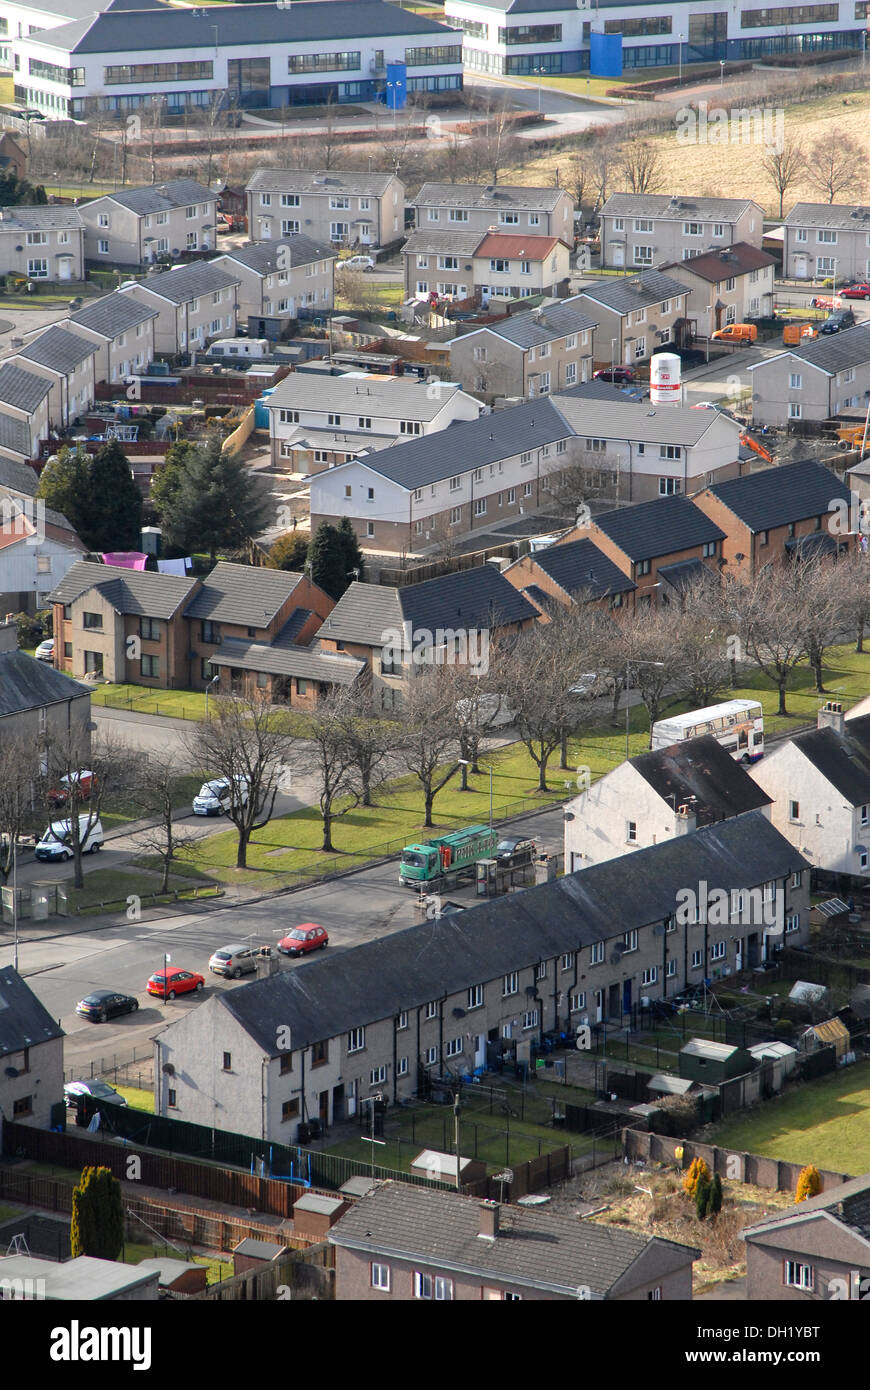 Low altitude aerial view of social housing in Stirling, Stirlingshire, Scotland - Stock Image